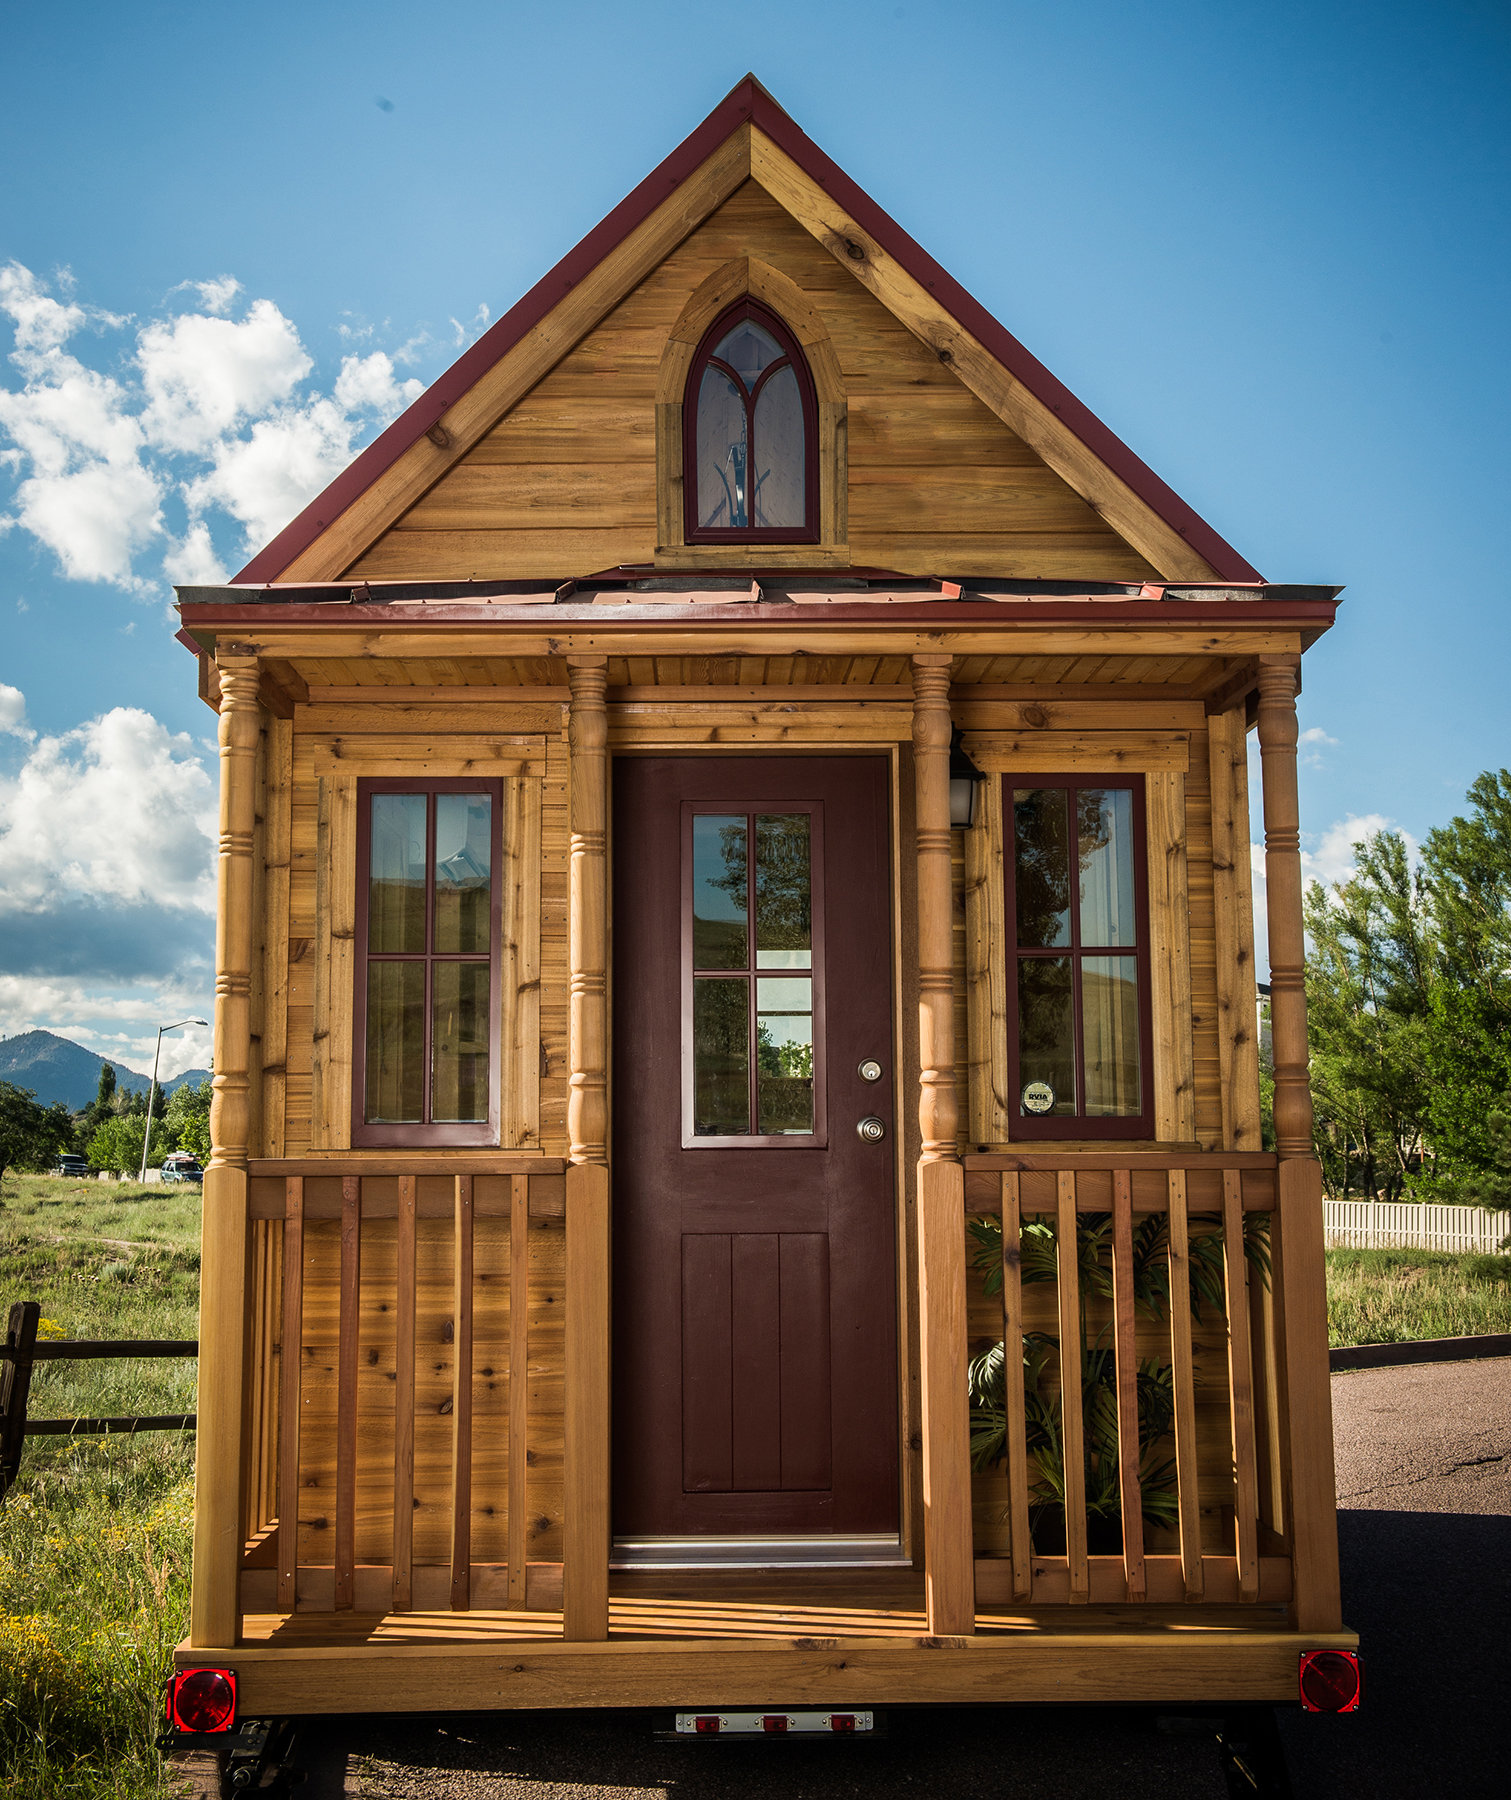 Find Rent Houses: 10 Tiny Houses You Can Rent (or Even